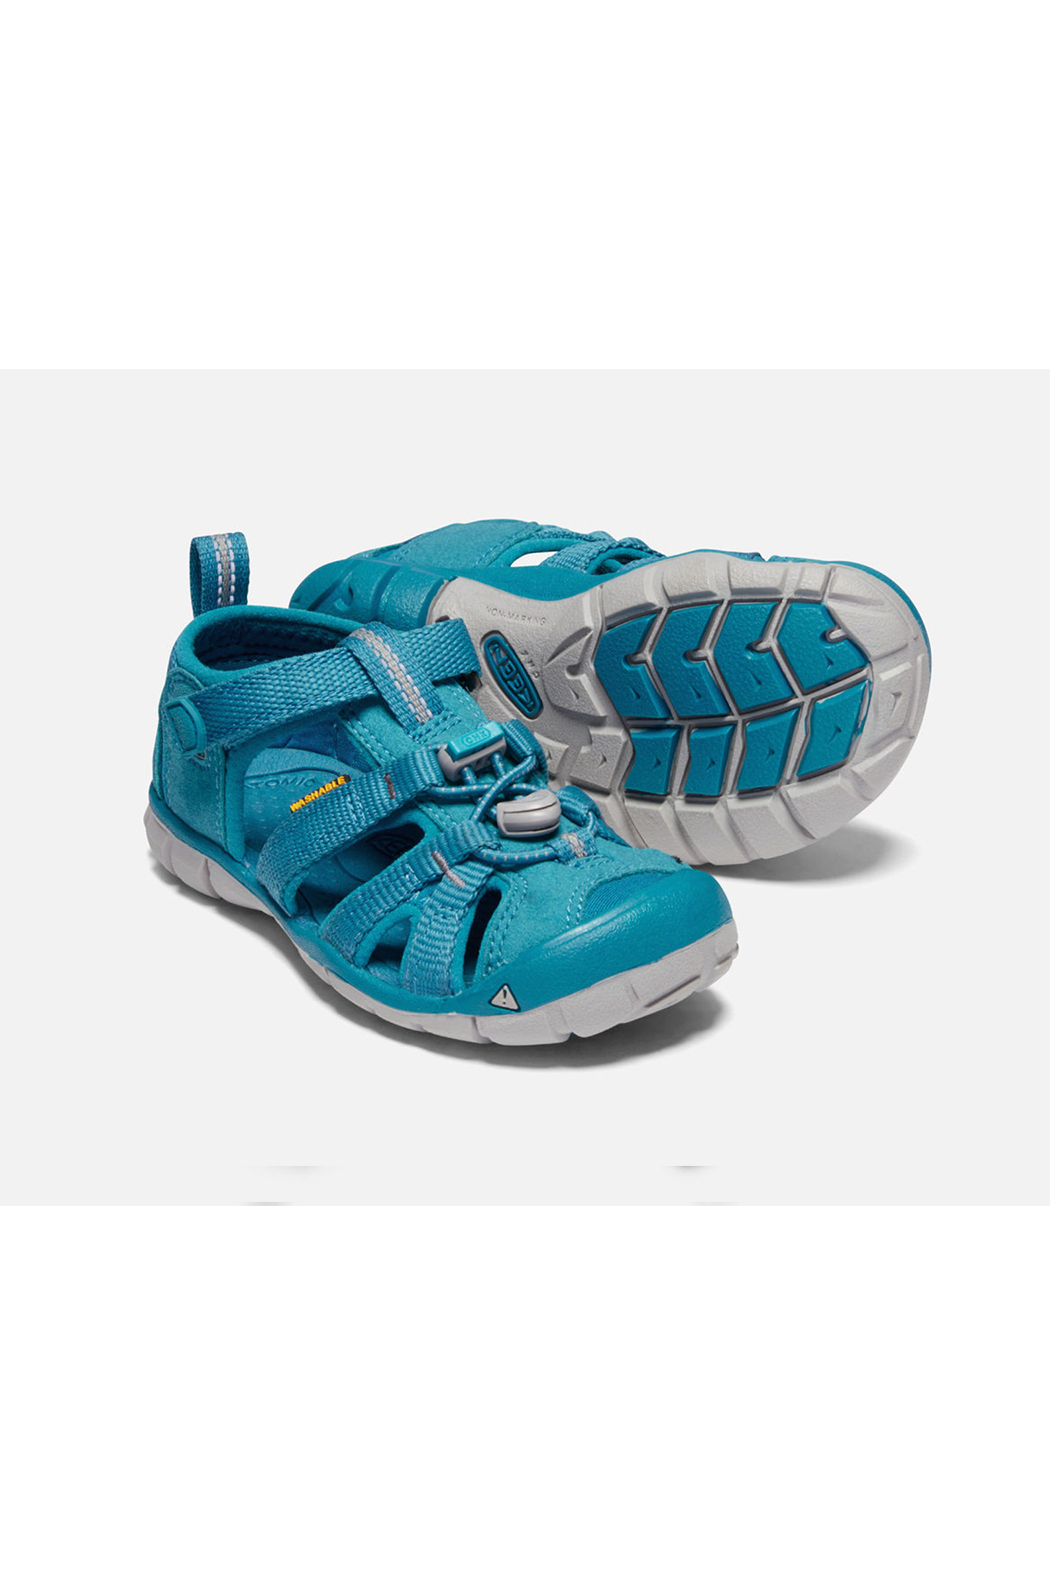 Keen Seacamp II CNX Sandal Children/Youth - Front Full Image